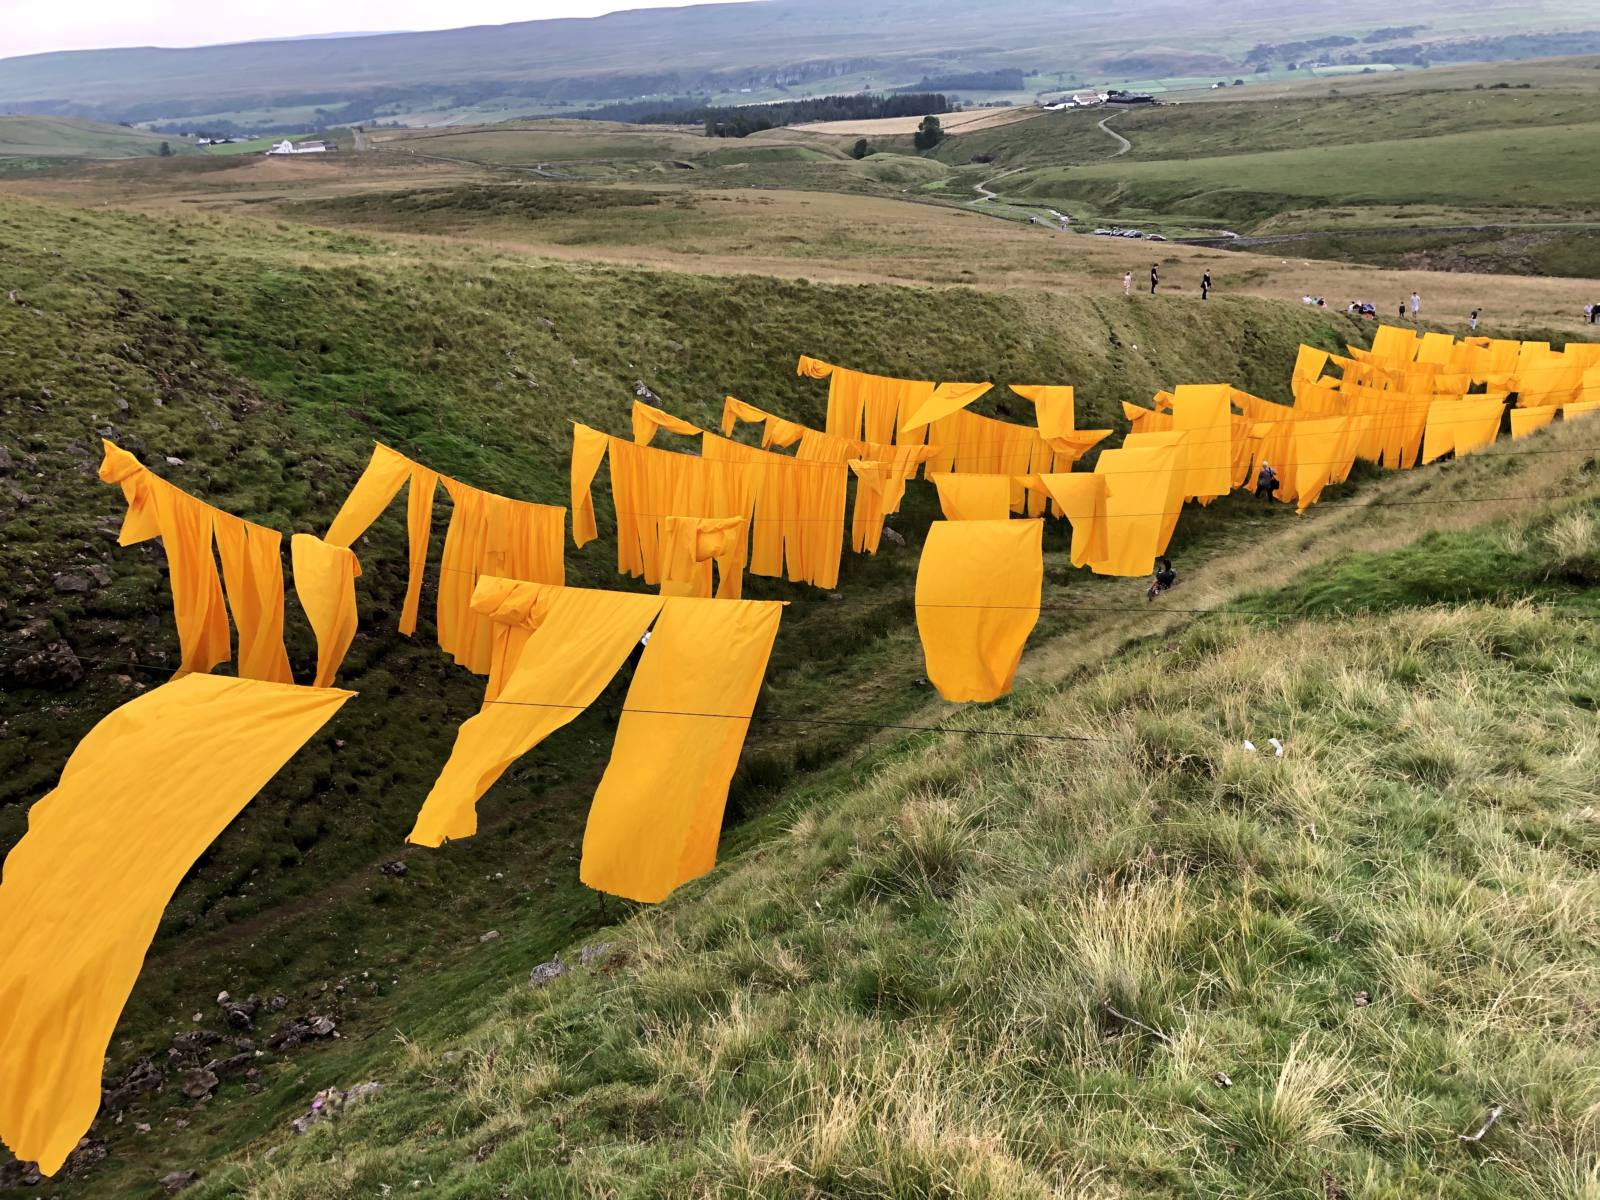 Steve Messam's Hush, a large scale temporary art installation at Bales Hush in Upper Teesdale. Image taken by Pixie Tenenbaum for Fashion Voyeur